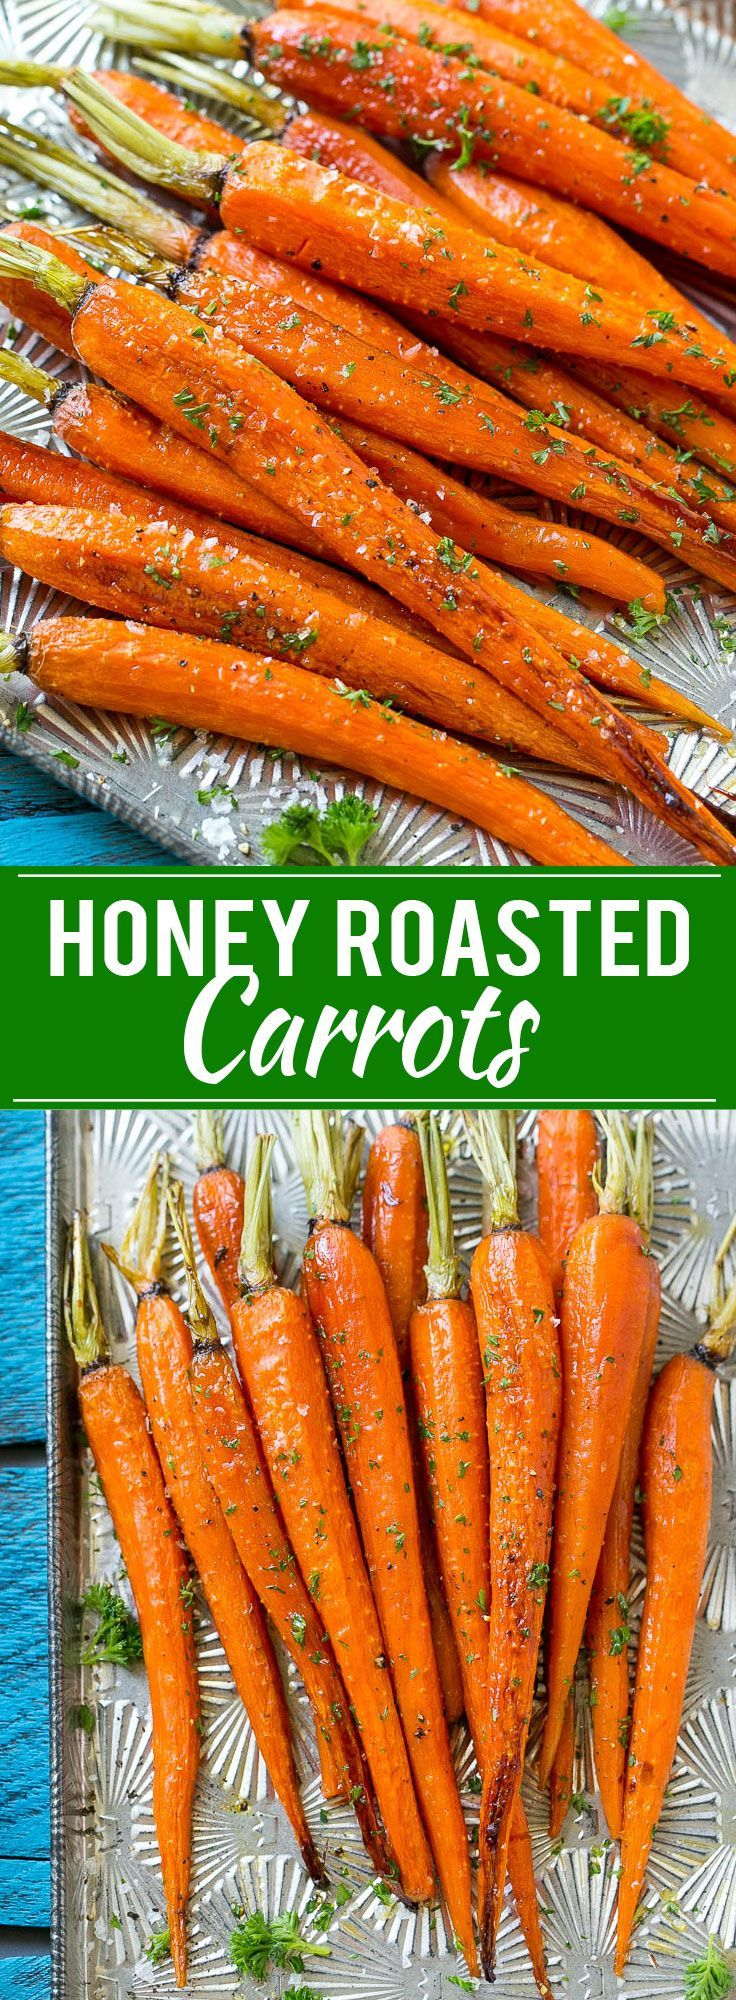 This recipe for honey roasted carrots is whole carrots, bathed in honey and roasted to perfection. | Dinner at the Zoo